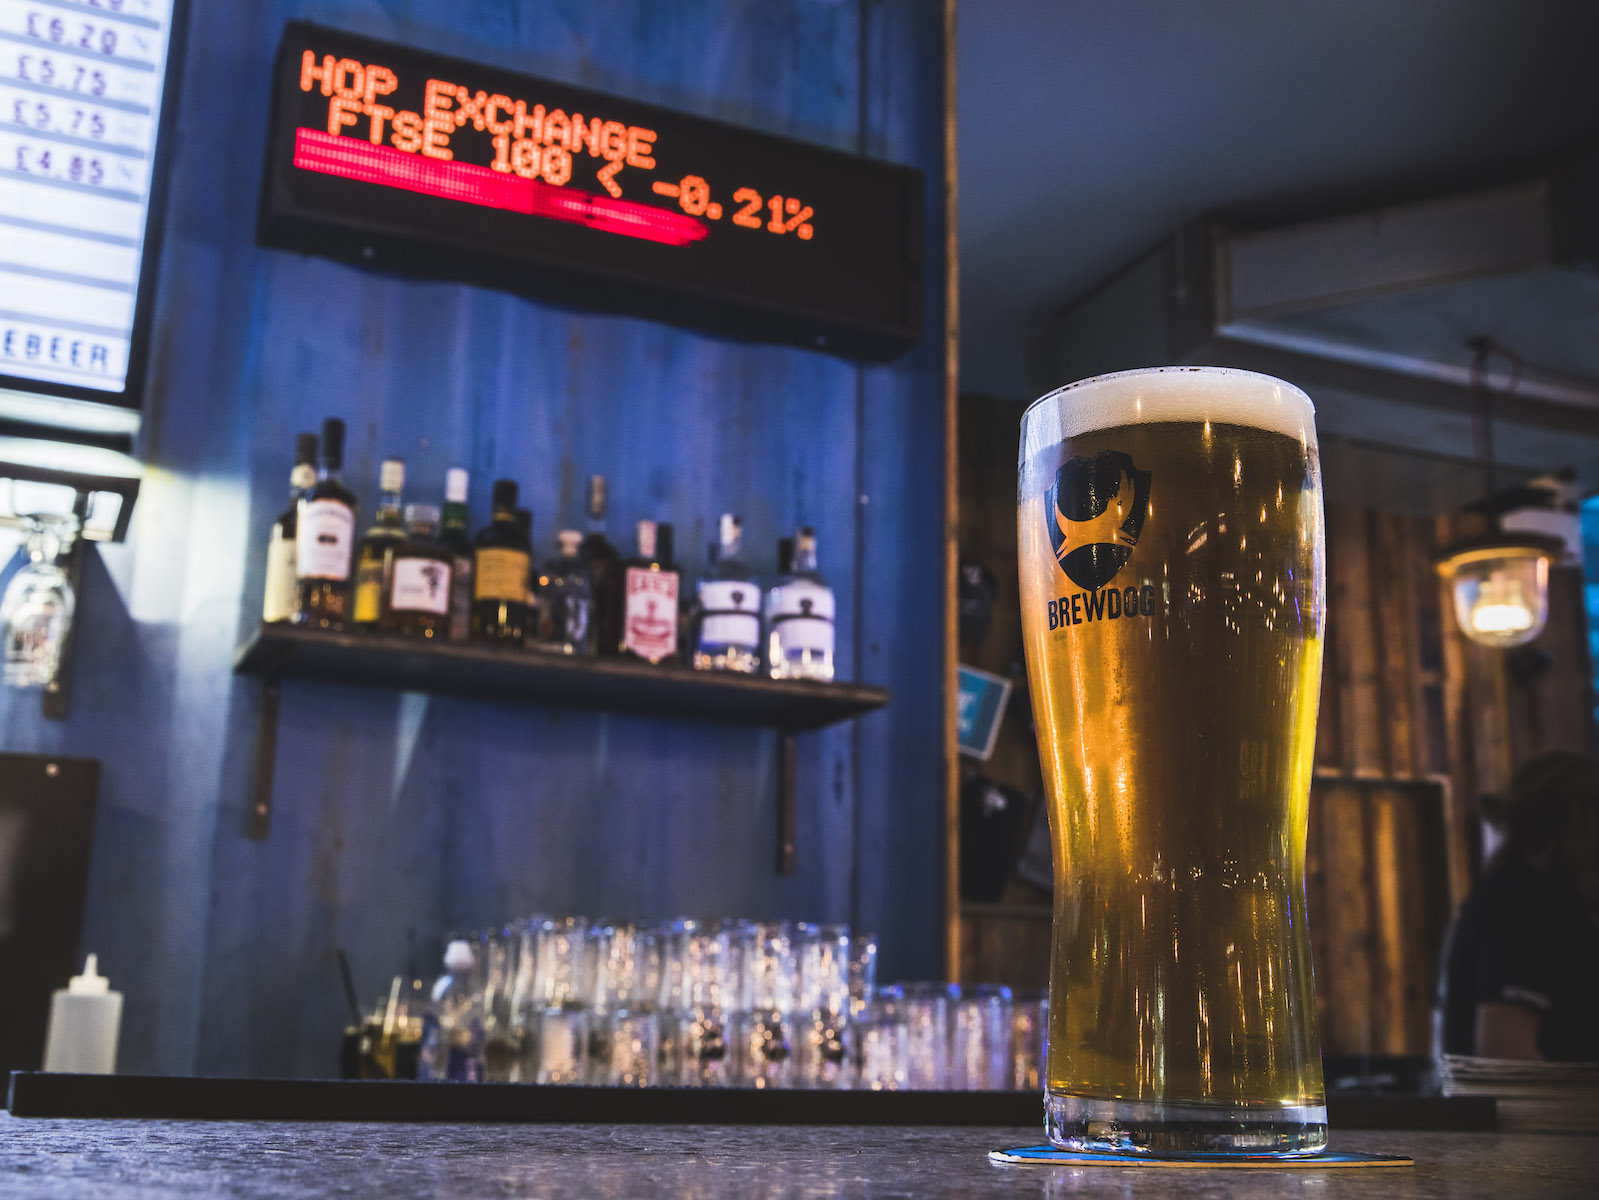 This BrewDog Bar Has a Beer That Changes Price With the Stock Market